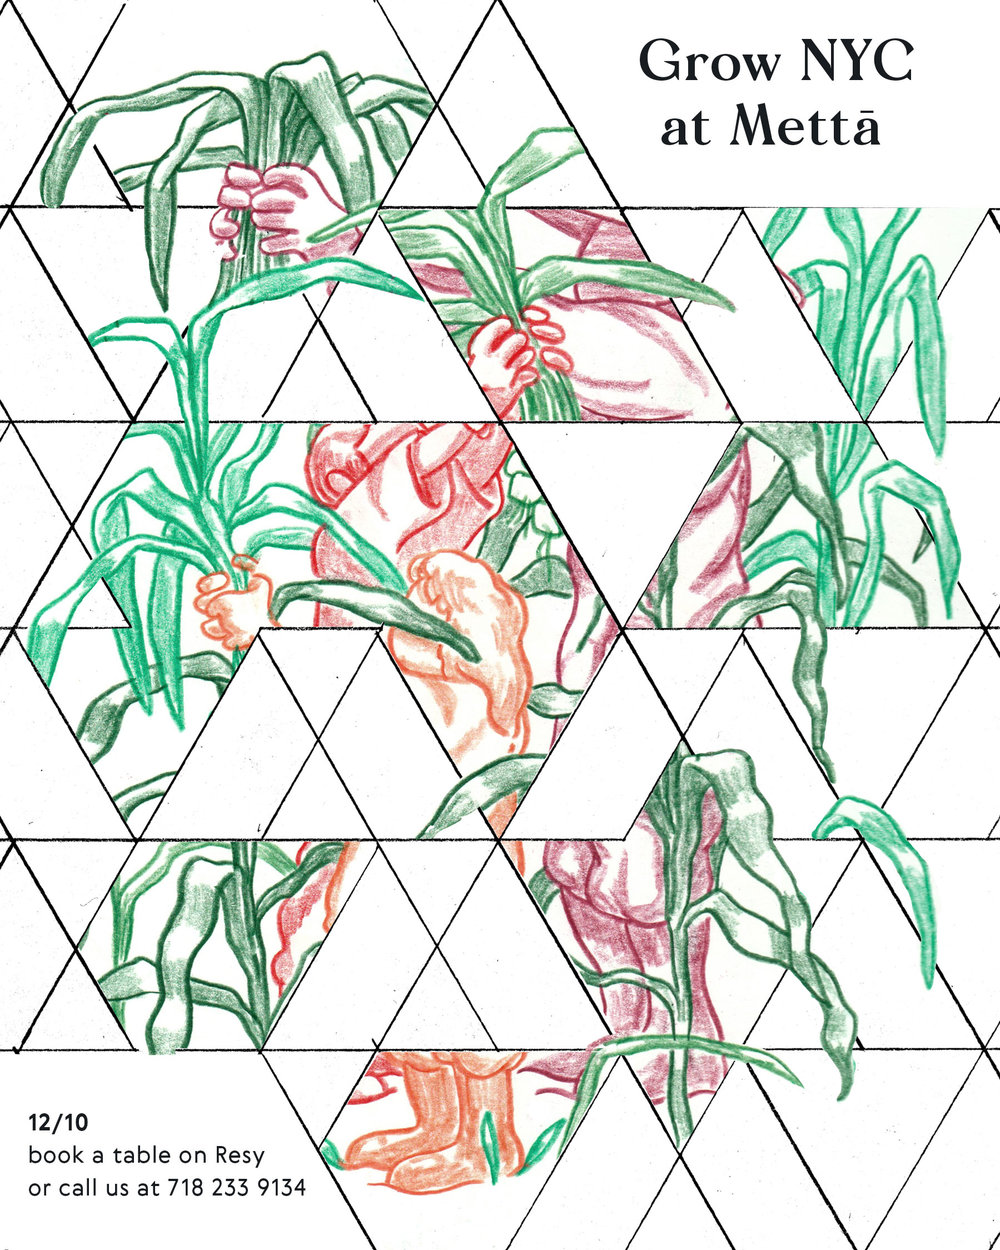 metta_grownyc_pattern_flyer2.jpg